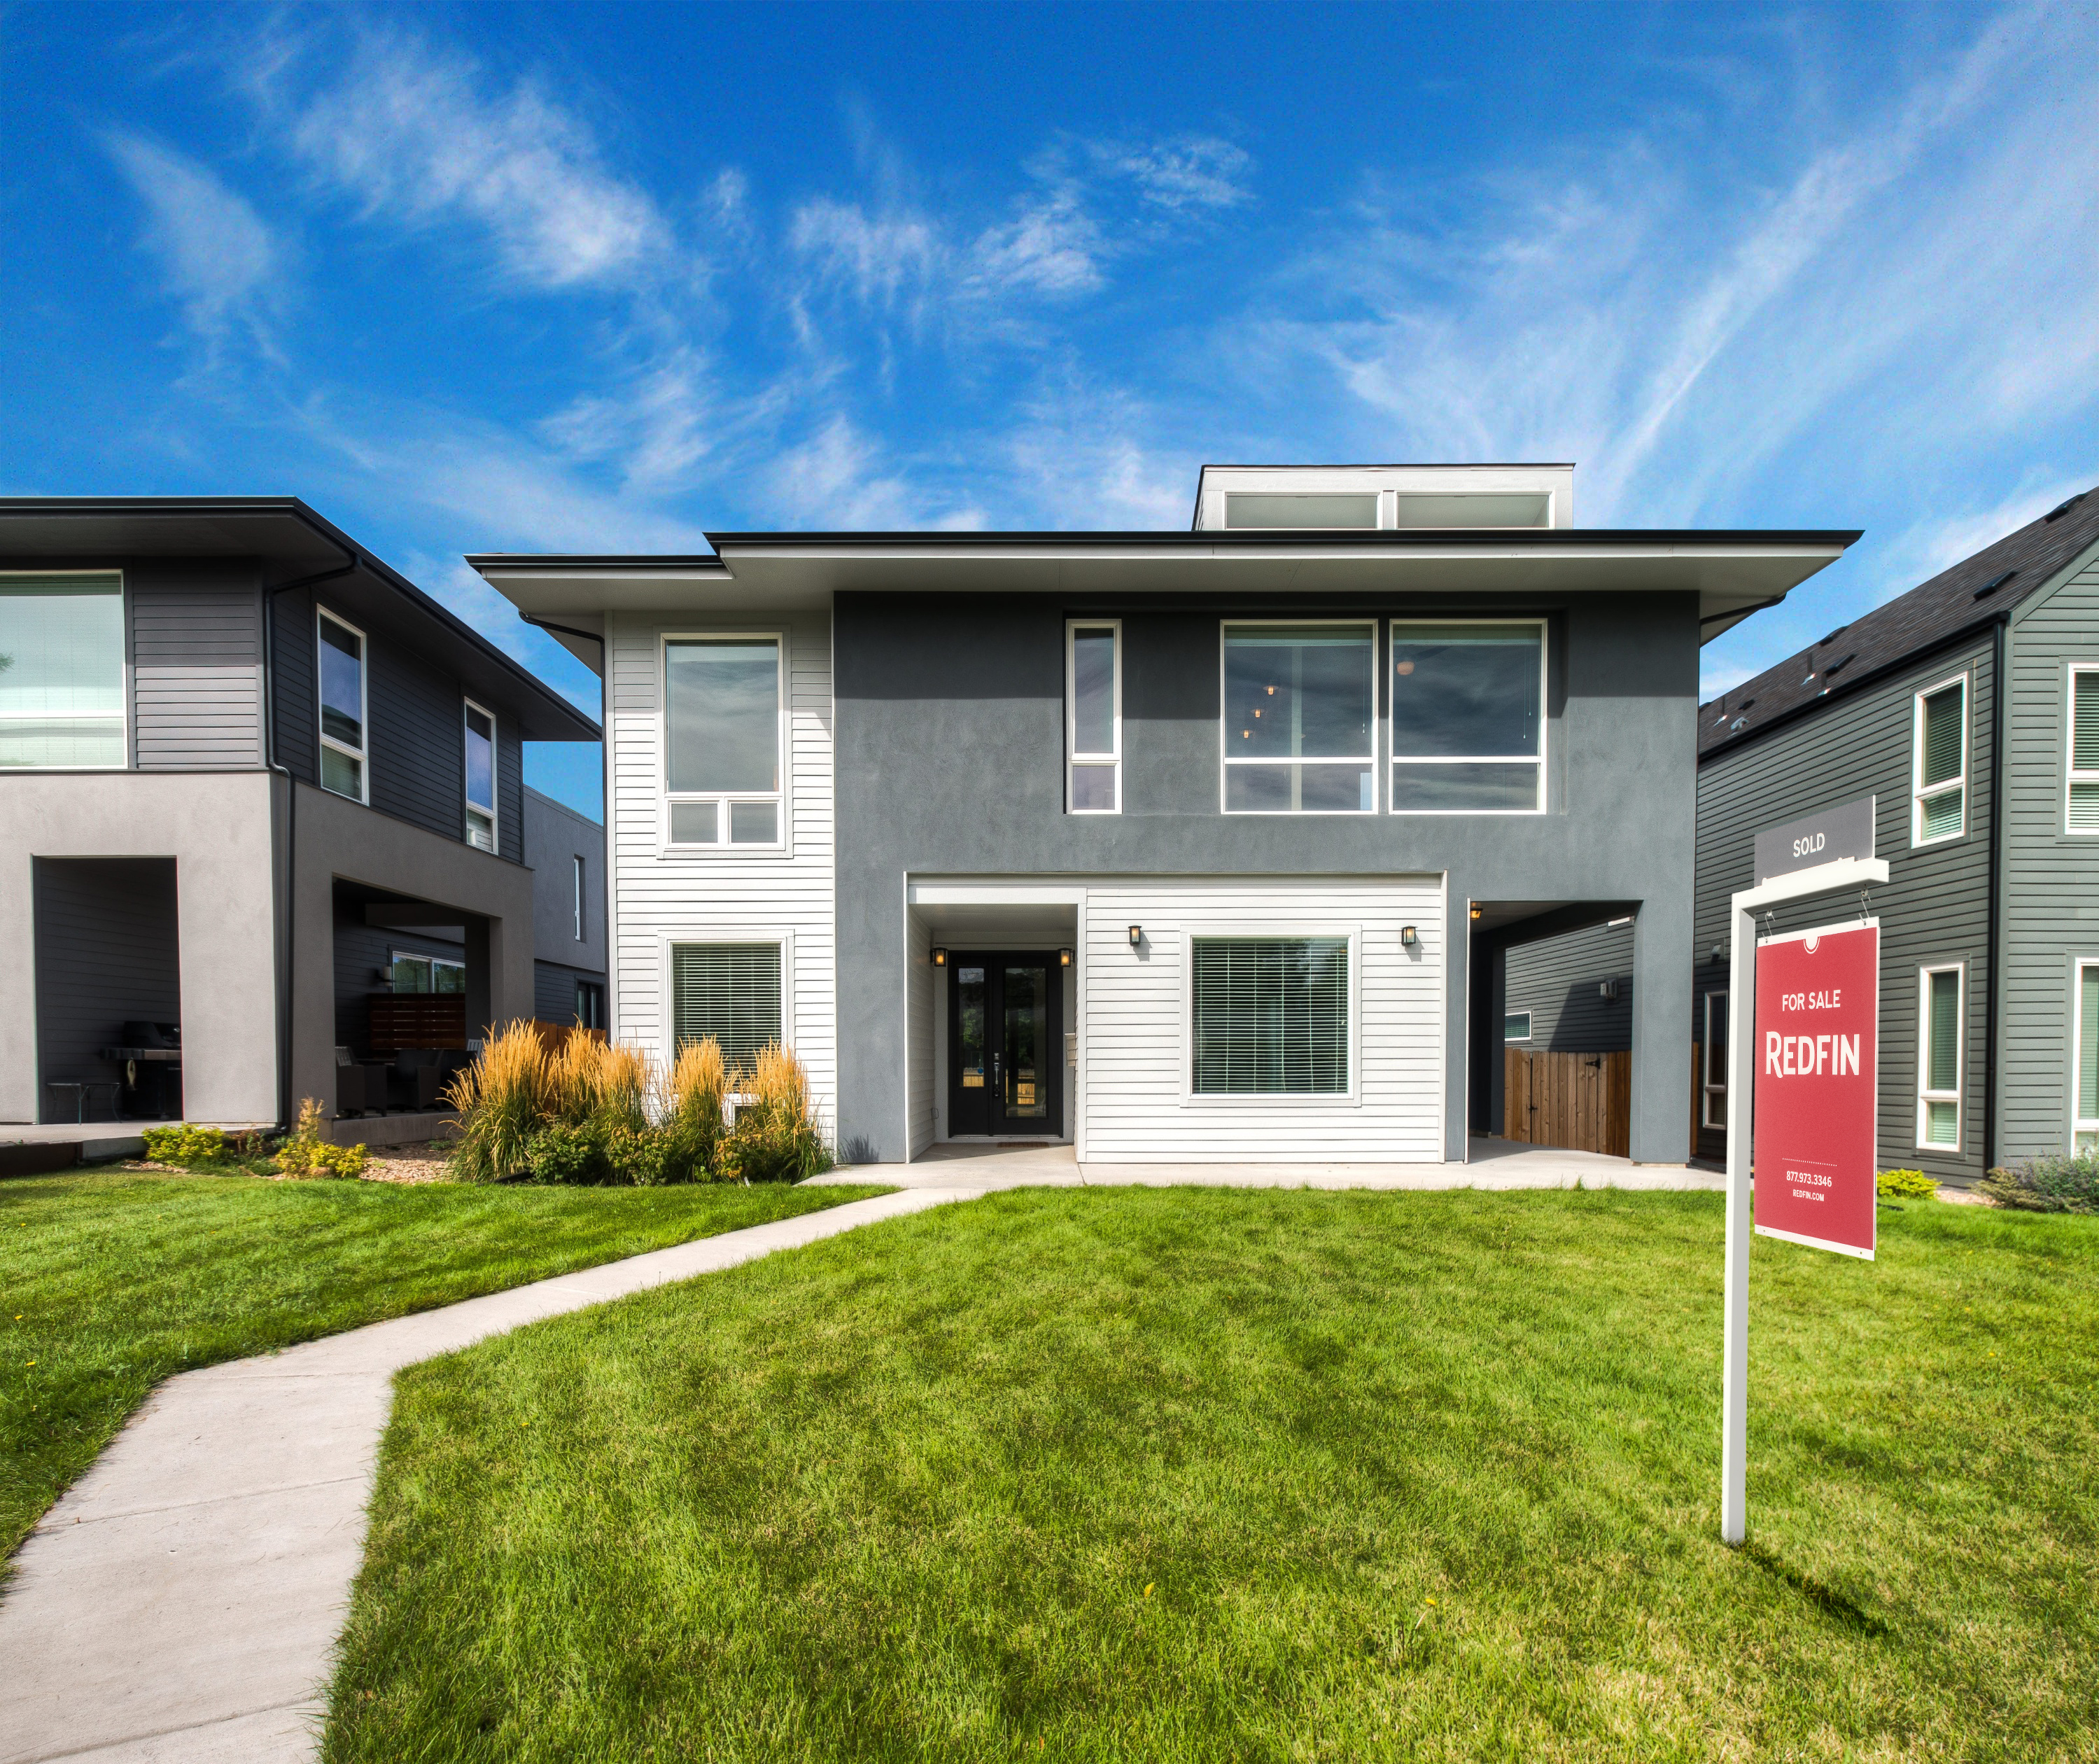 A Denver home sold by Redfin (Photo: Business Wire)